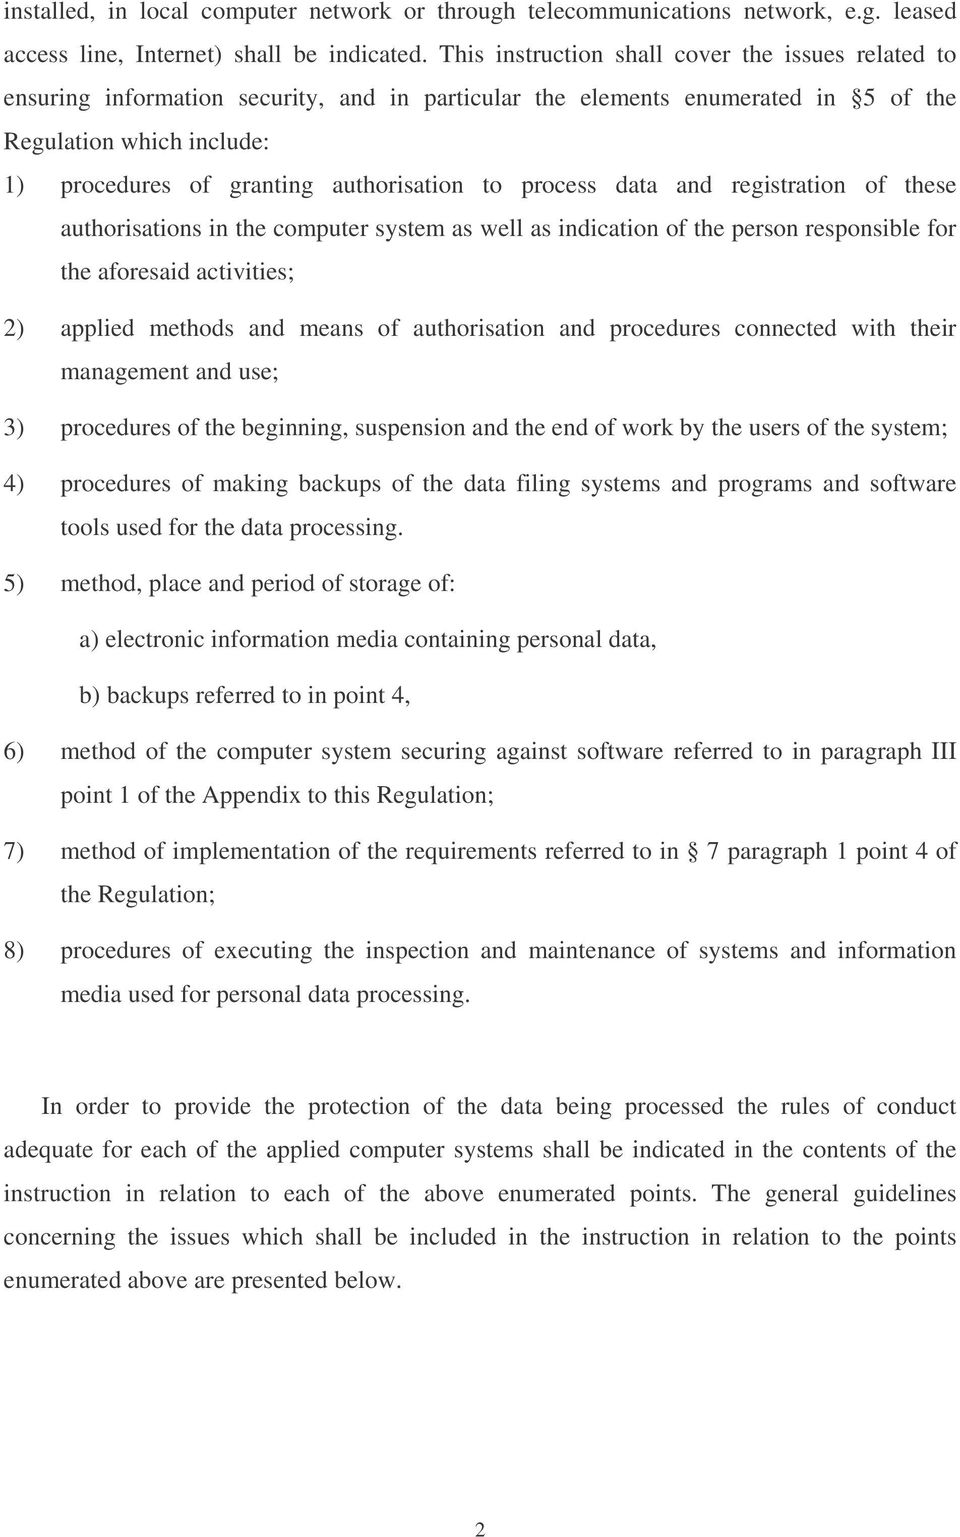 authorisation to process data and registration of these authorisations in the computer system as well as indication of the person responsible for the aforesaid activities; 2) applied methods and